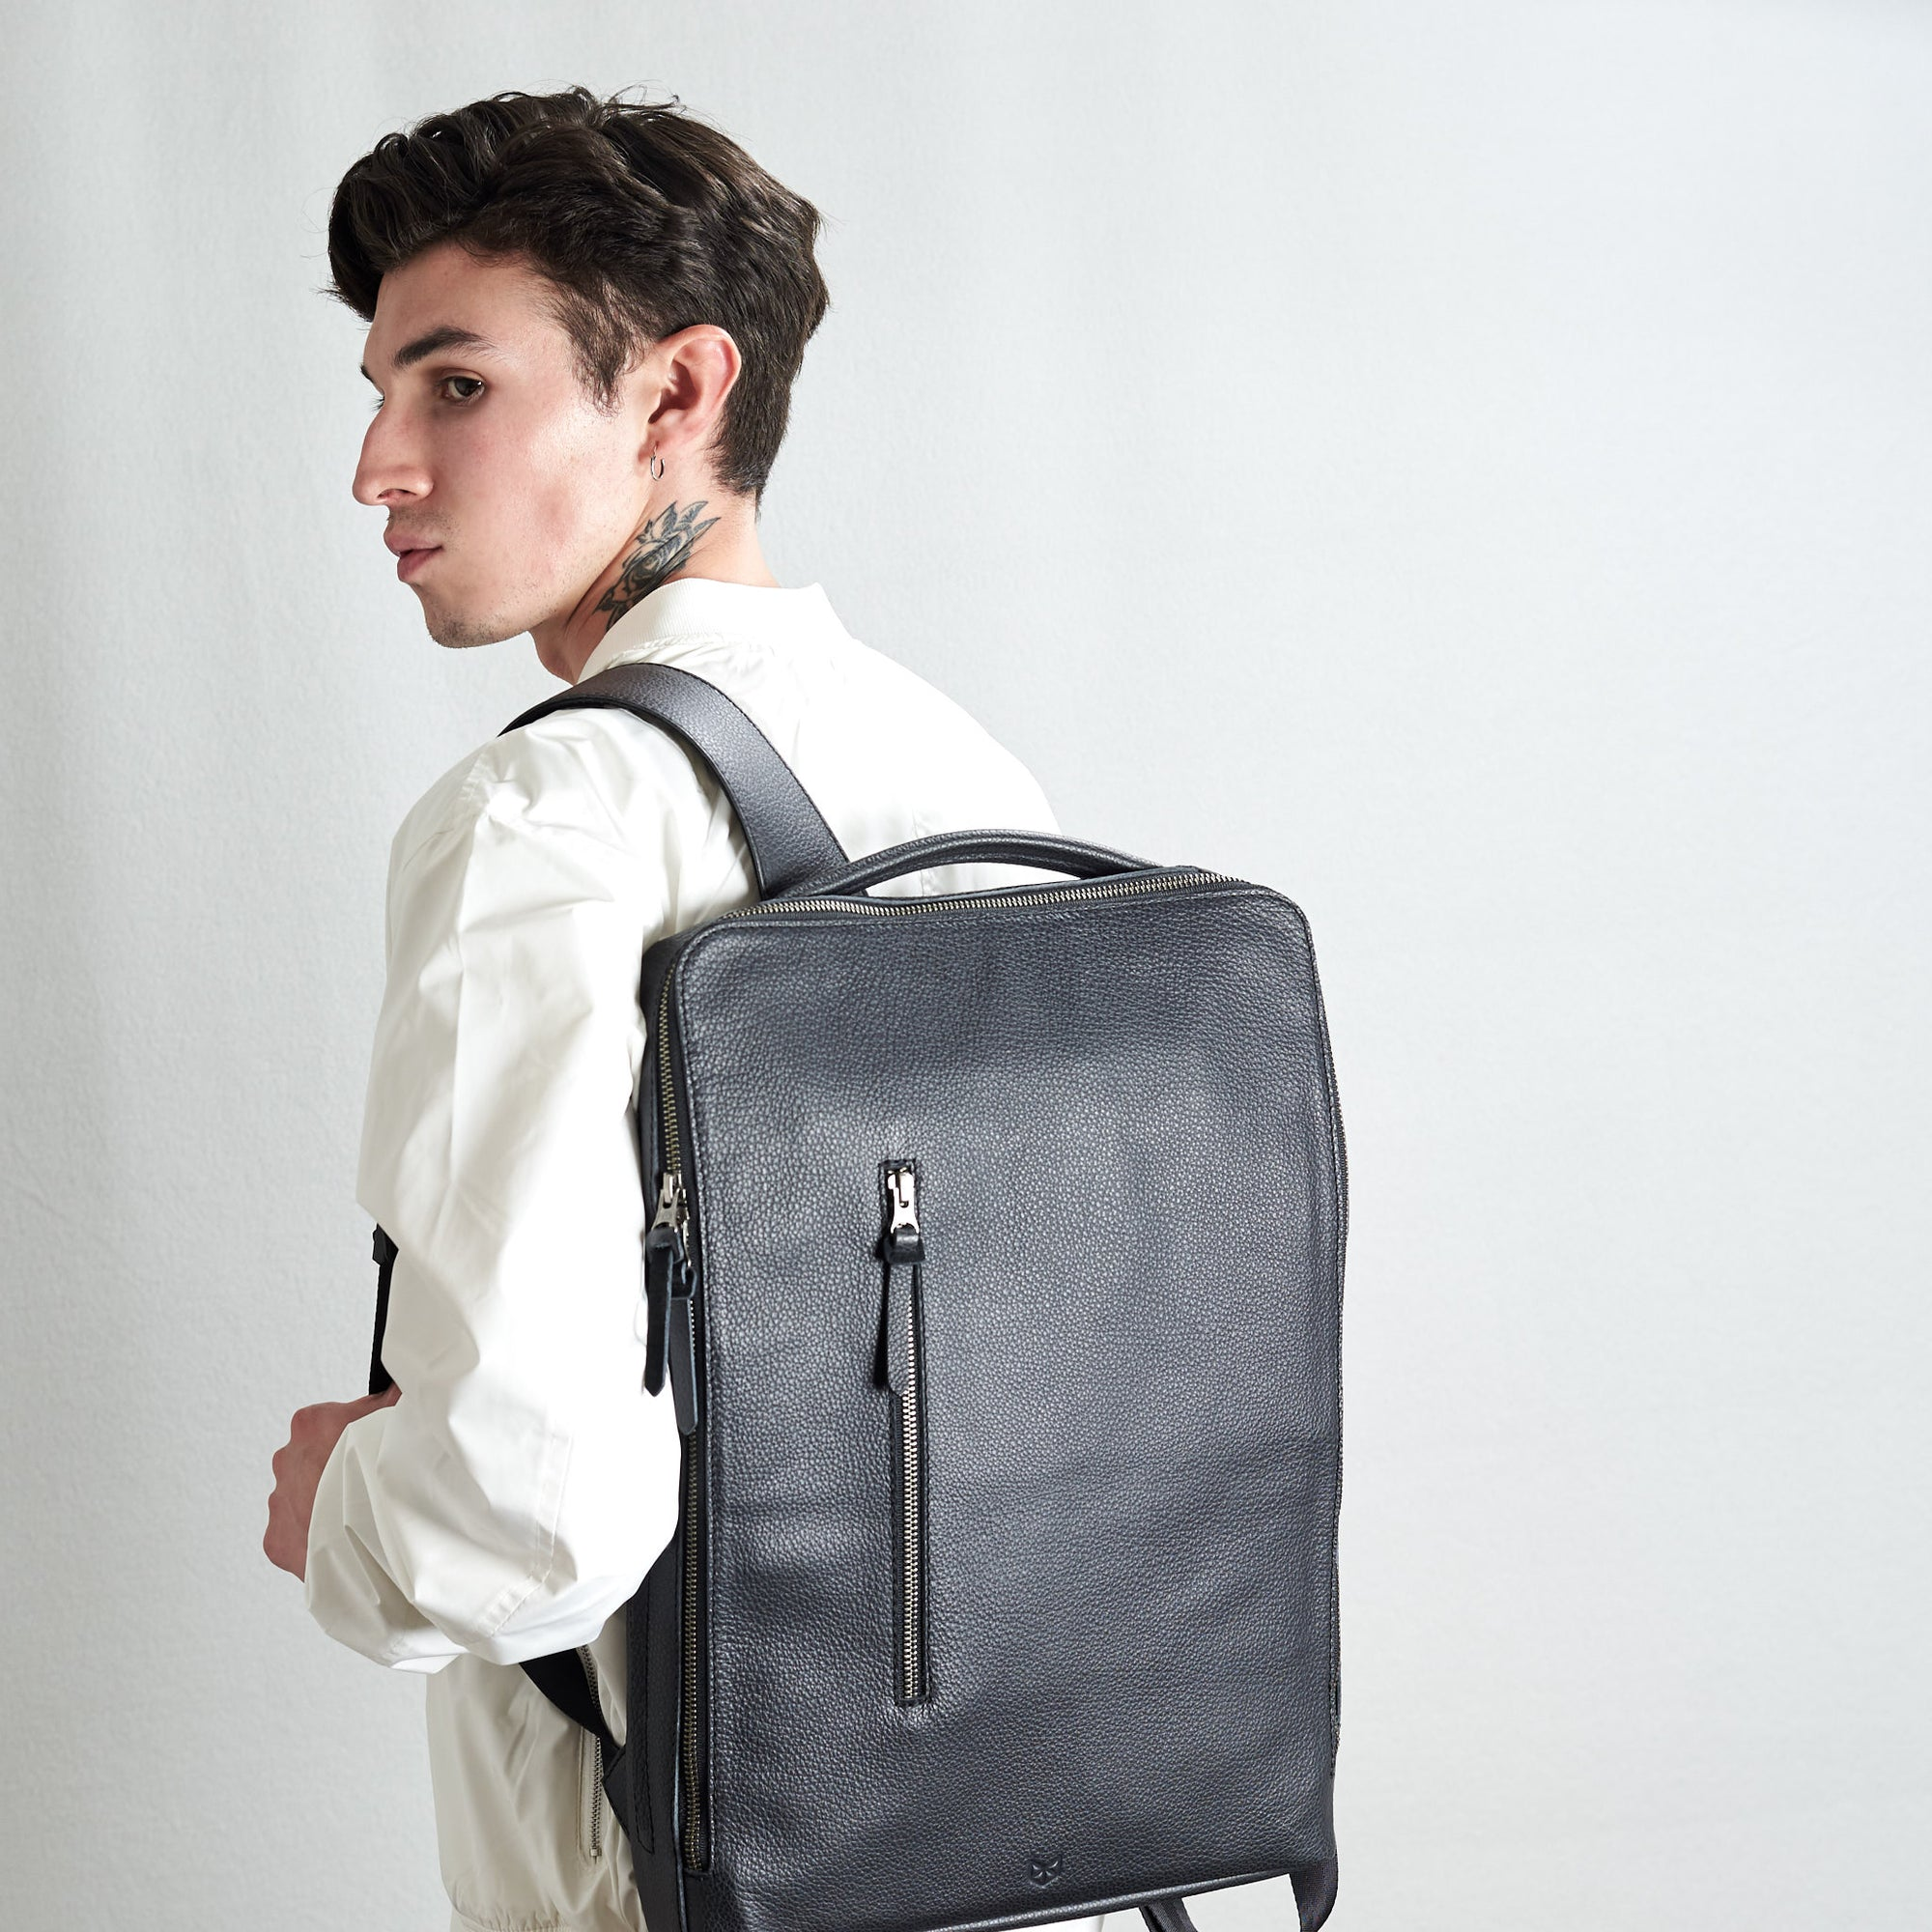 Saola Tech Laptop Backpack by Capra Leather